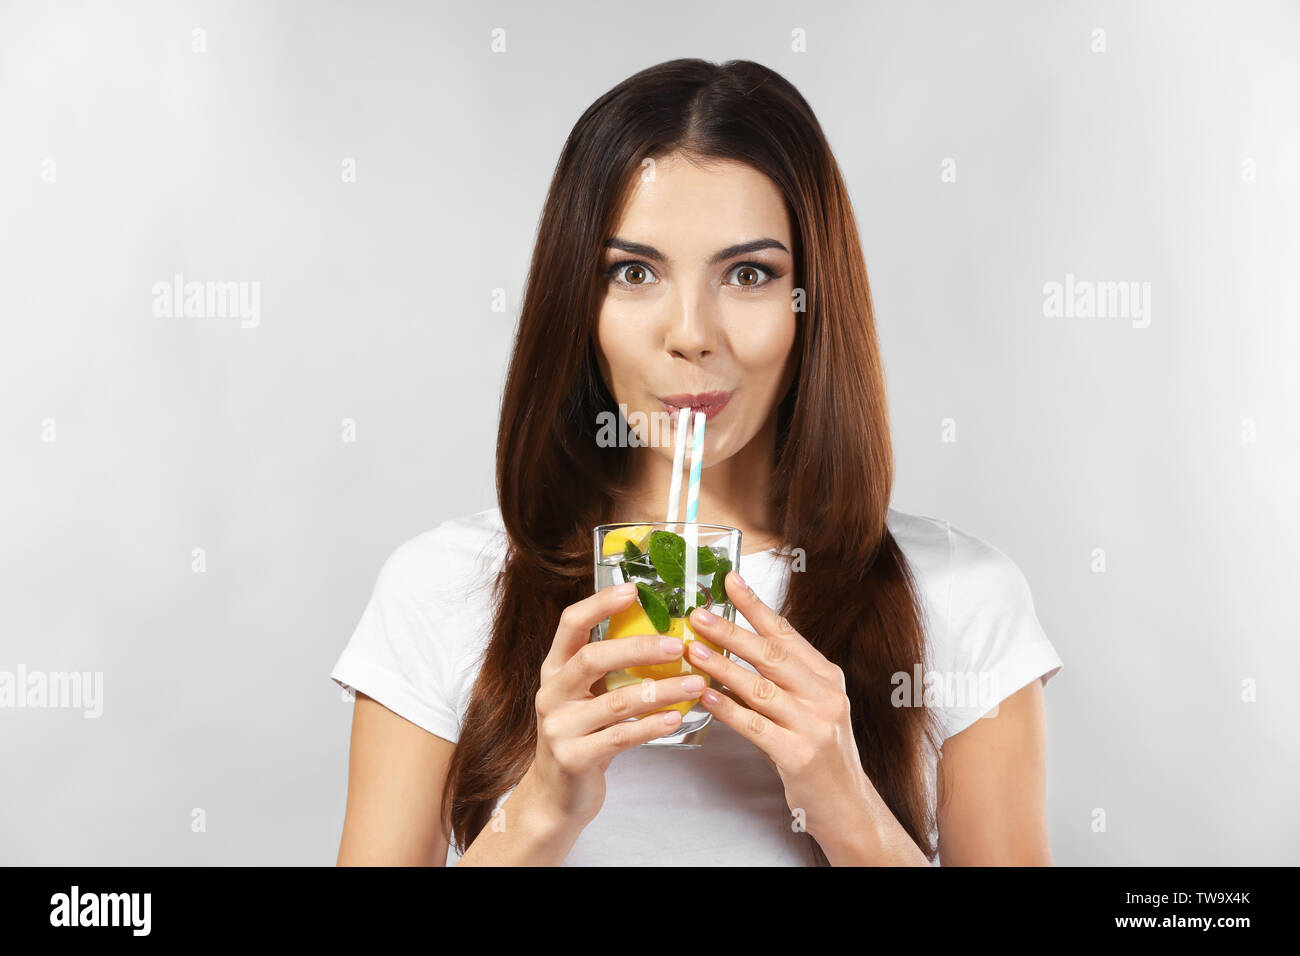 Beautiful young woman drinking lemonade on grey background - Stock Image